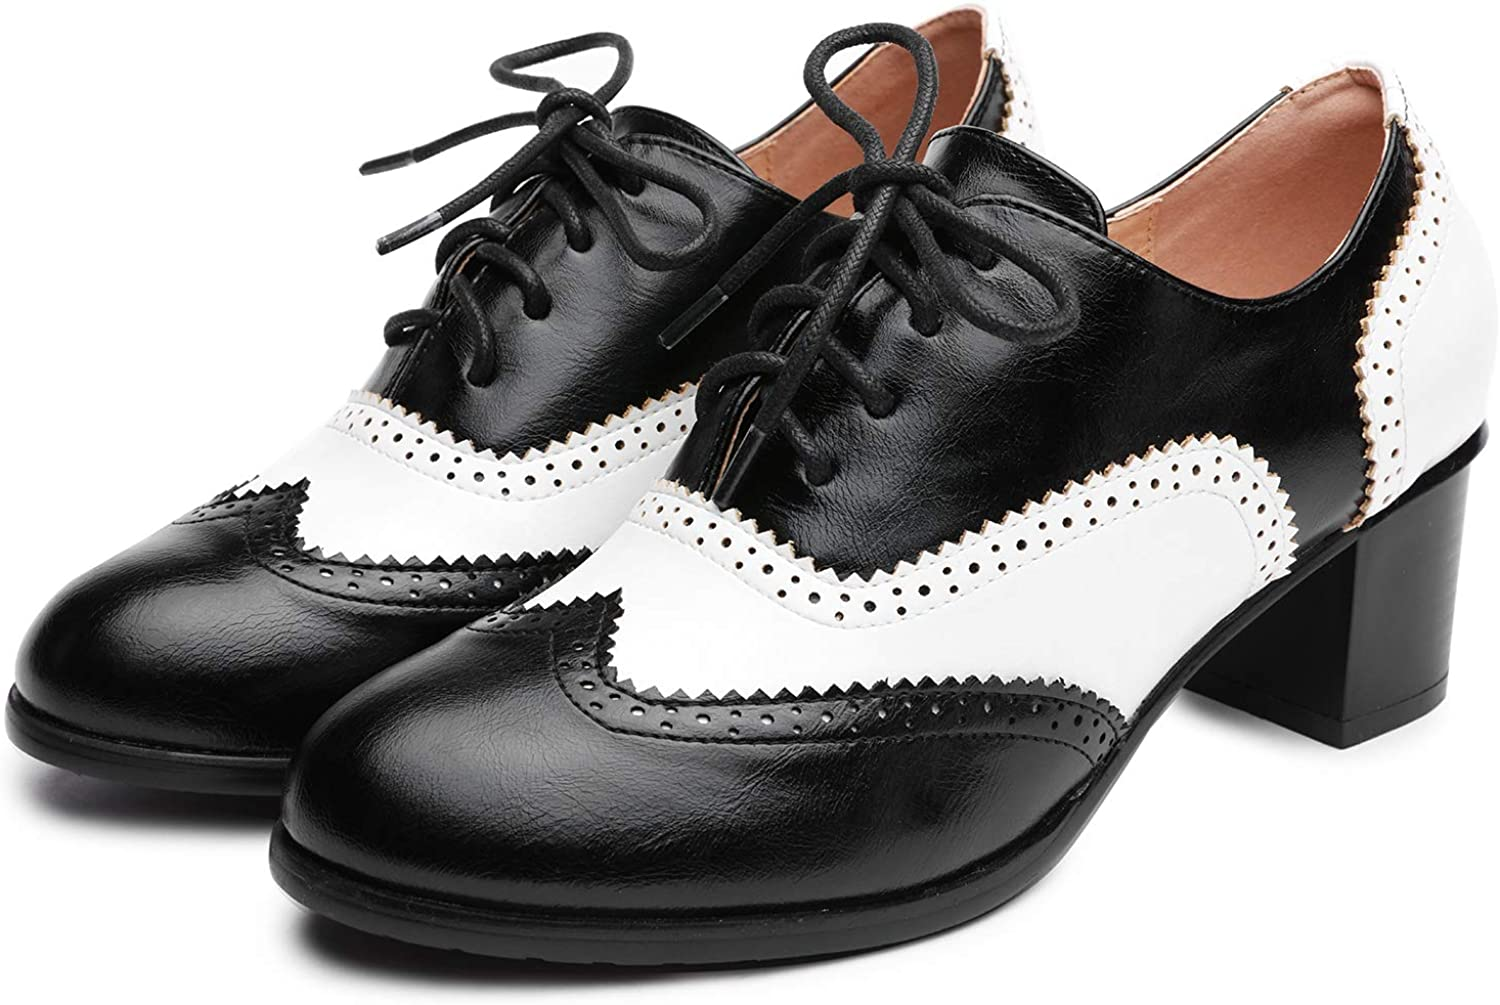 1940s Teenage Fashion: Girls Odema Womens PU Leather Oxfords Wingtip Lace up Mid Heel Pumps Shoes …  AT vintagedancer.com